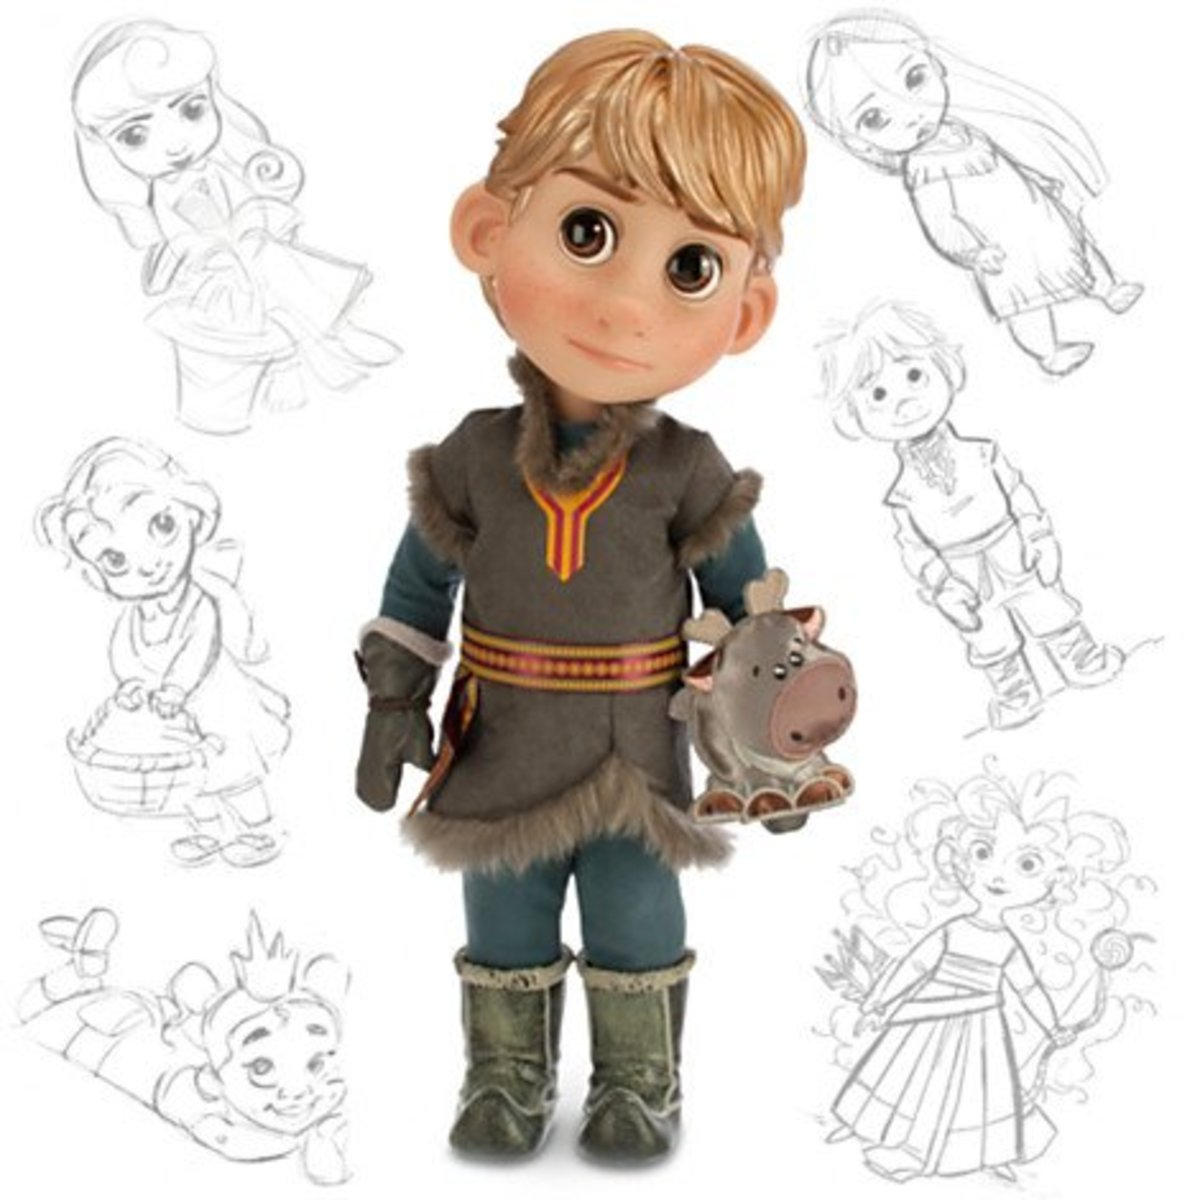 Disney Animator's Collection Kristoff Doll available at amazon.